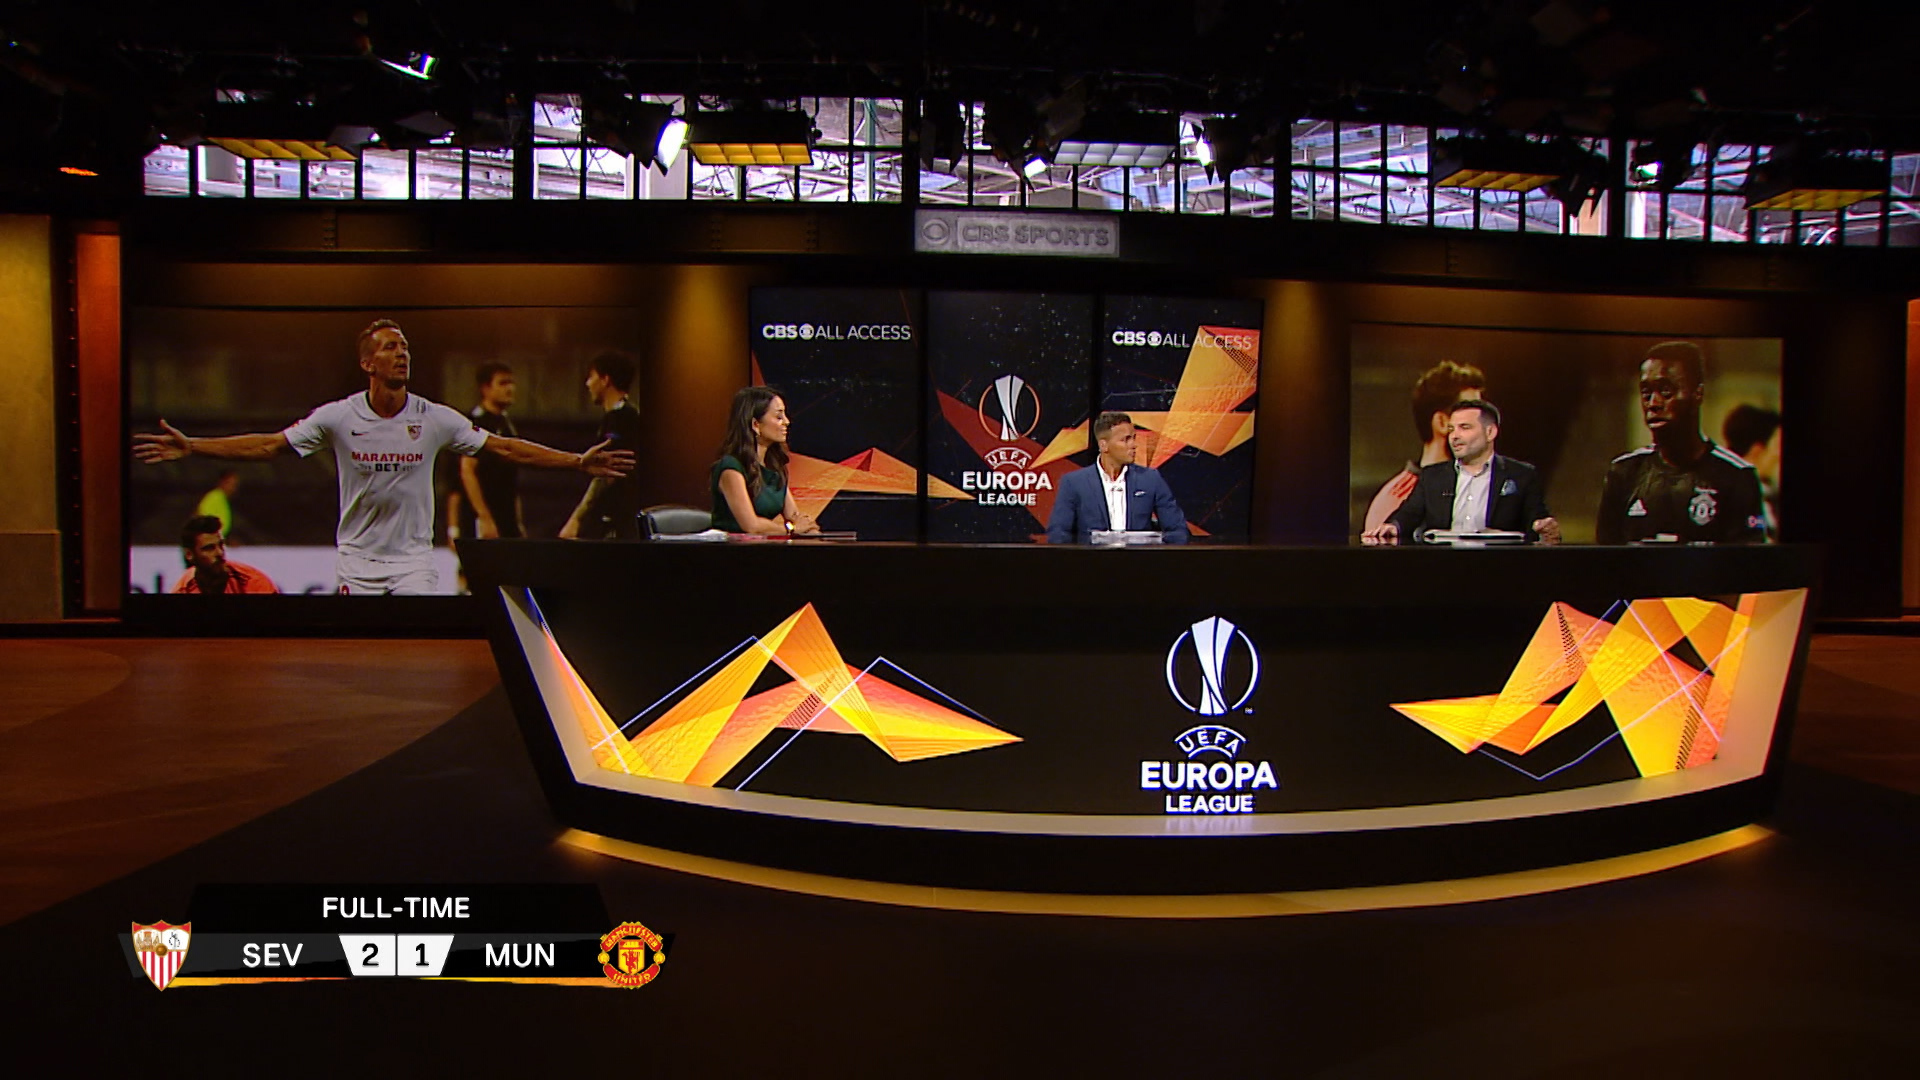 watch uefa europa league season 2020 episode 7 post show 3 europa league today full show on cbs all access watch uefa europa league season 2020 episode 7 post show 3 europa league today full show on cbs all access